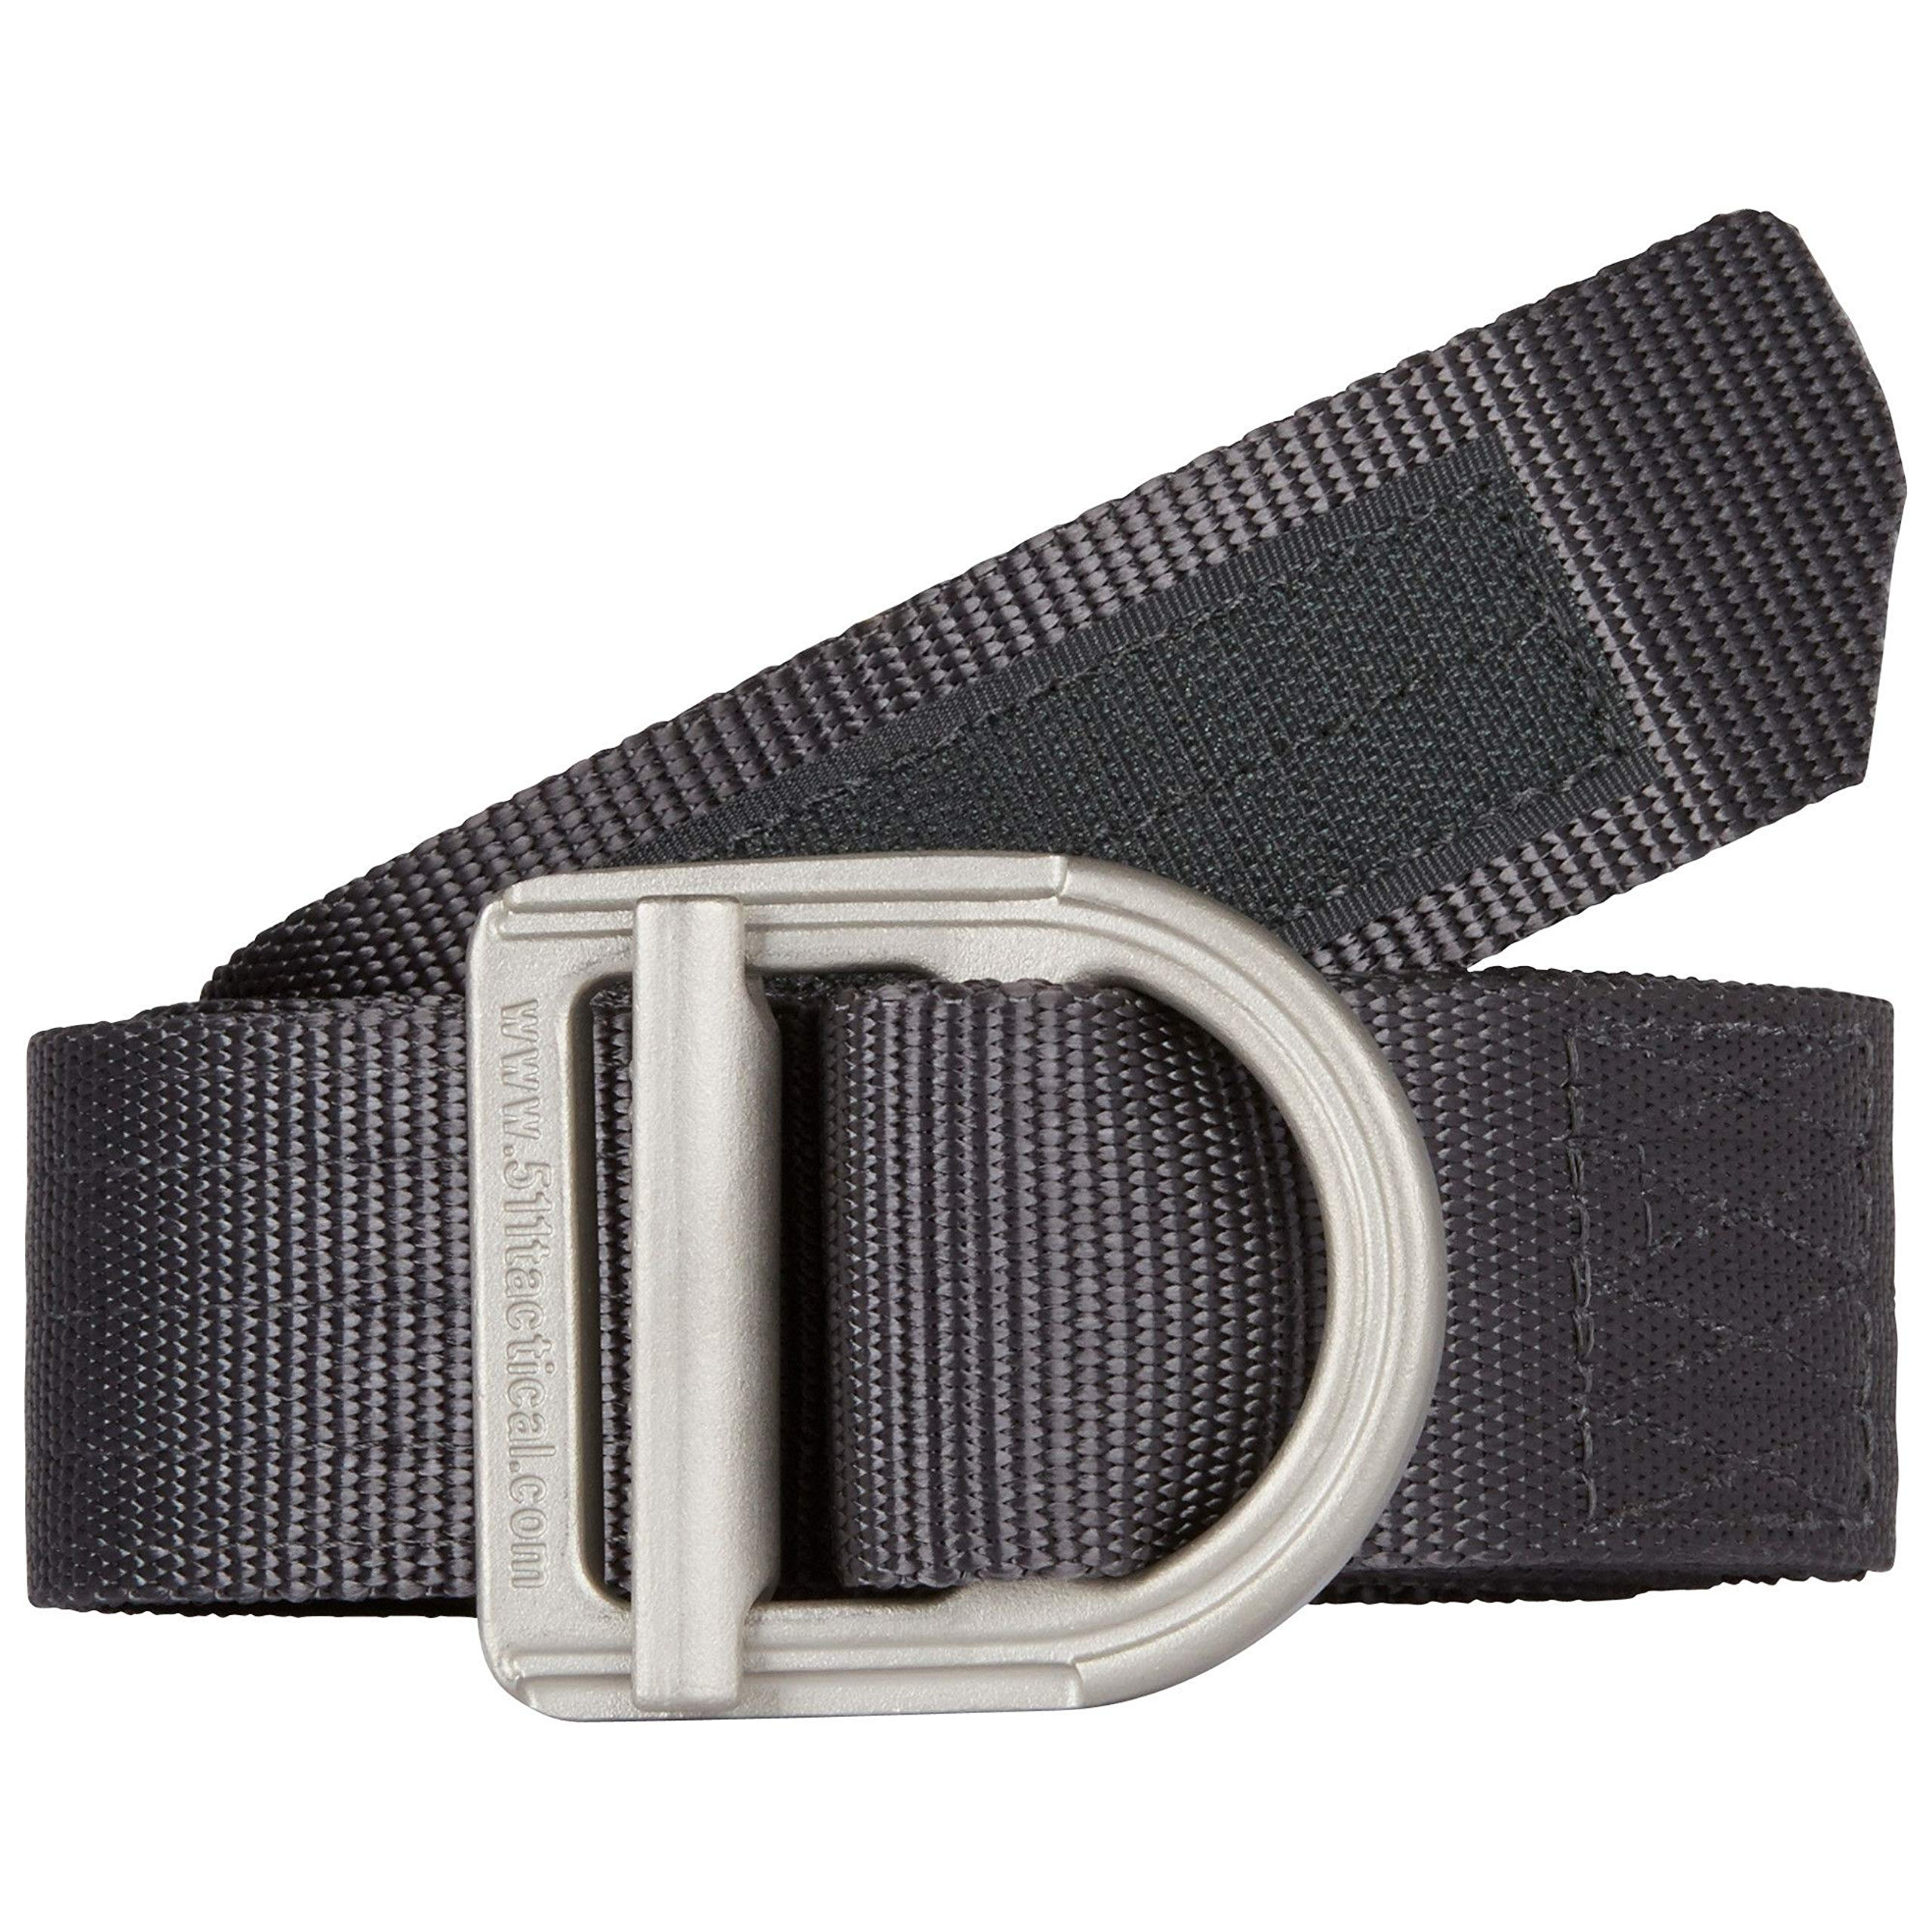 5.11  Trainer 1.5'' Tactical Belt, Heavy Duty for Military and Law Enforcement, Style 59409, Charcoal (018), XL by 5.11